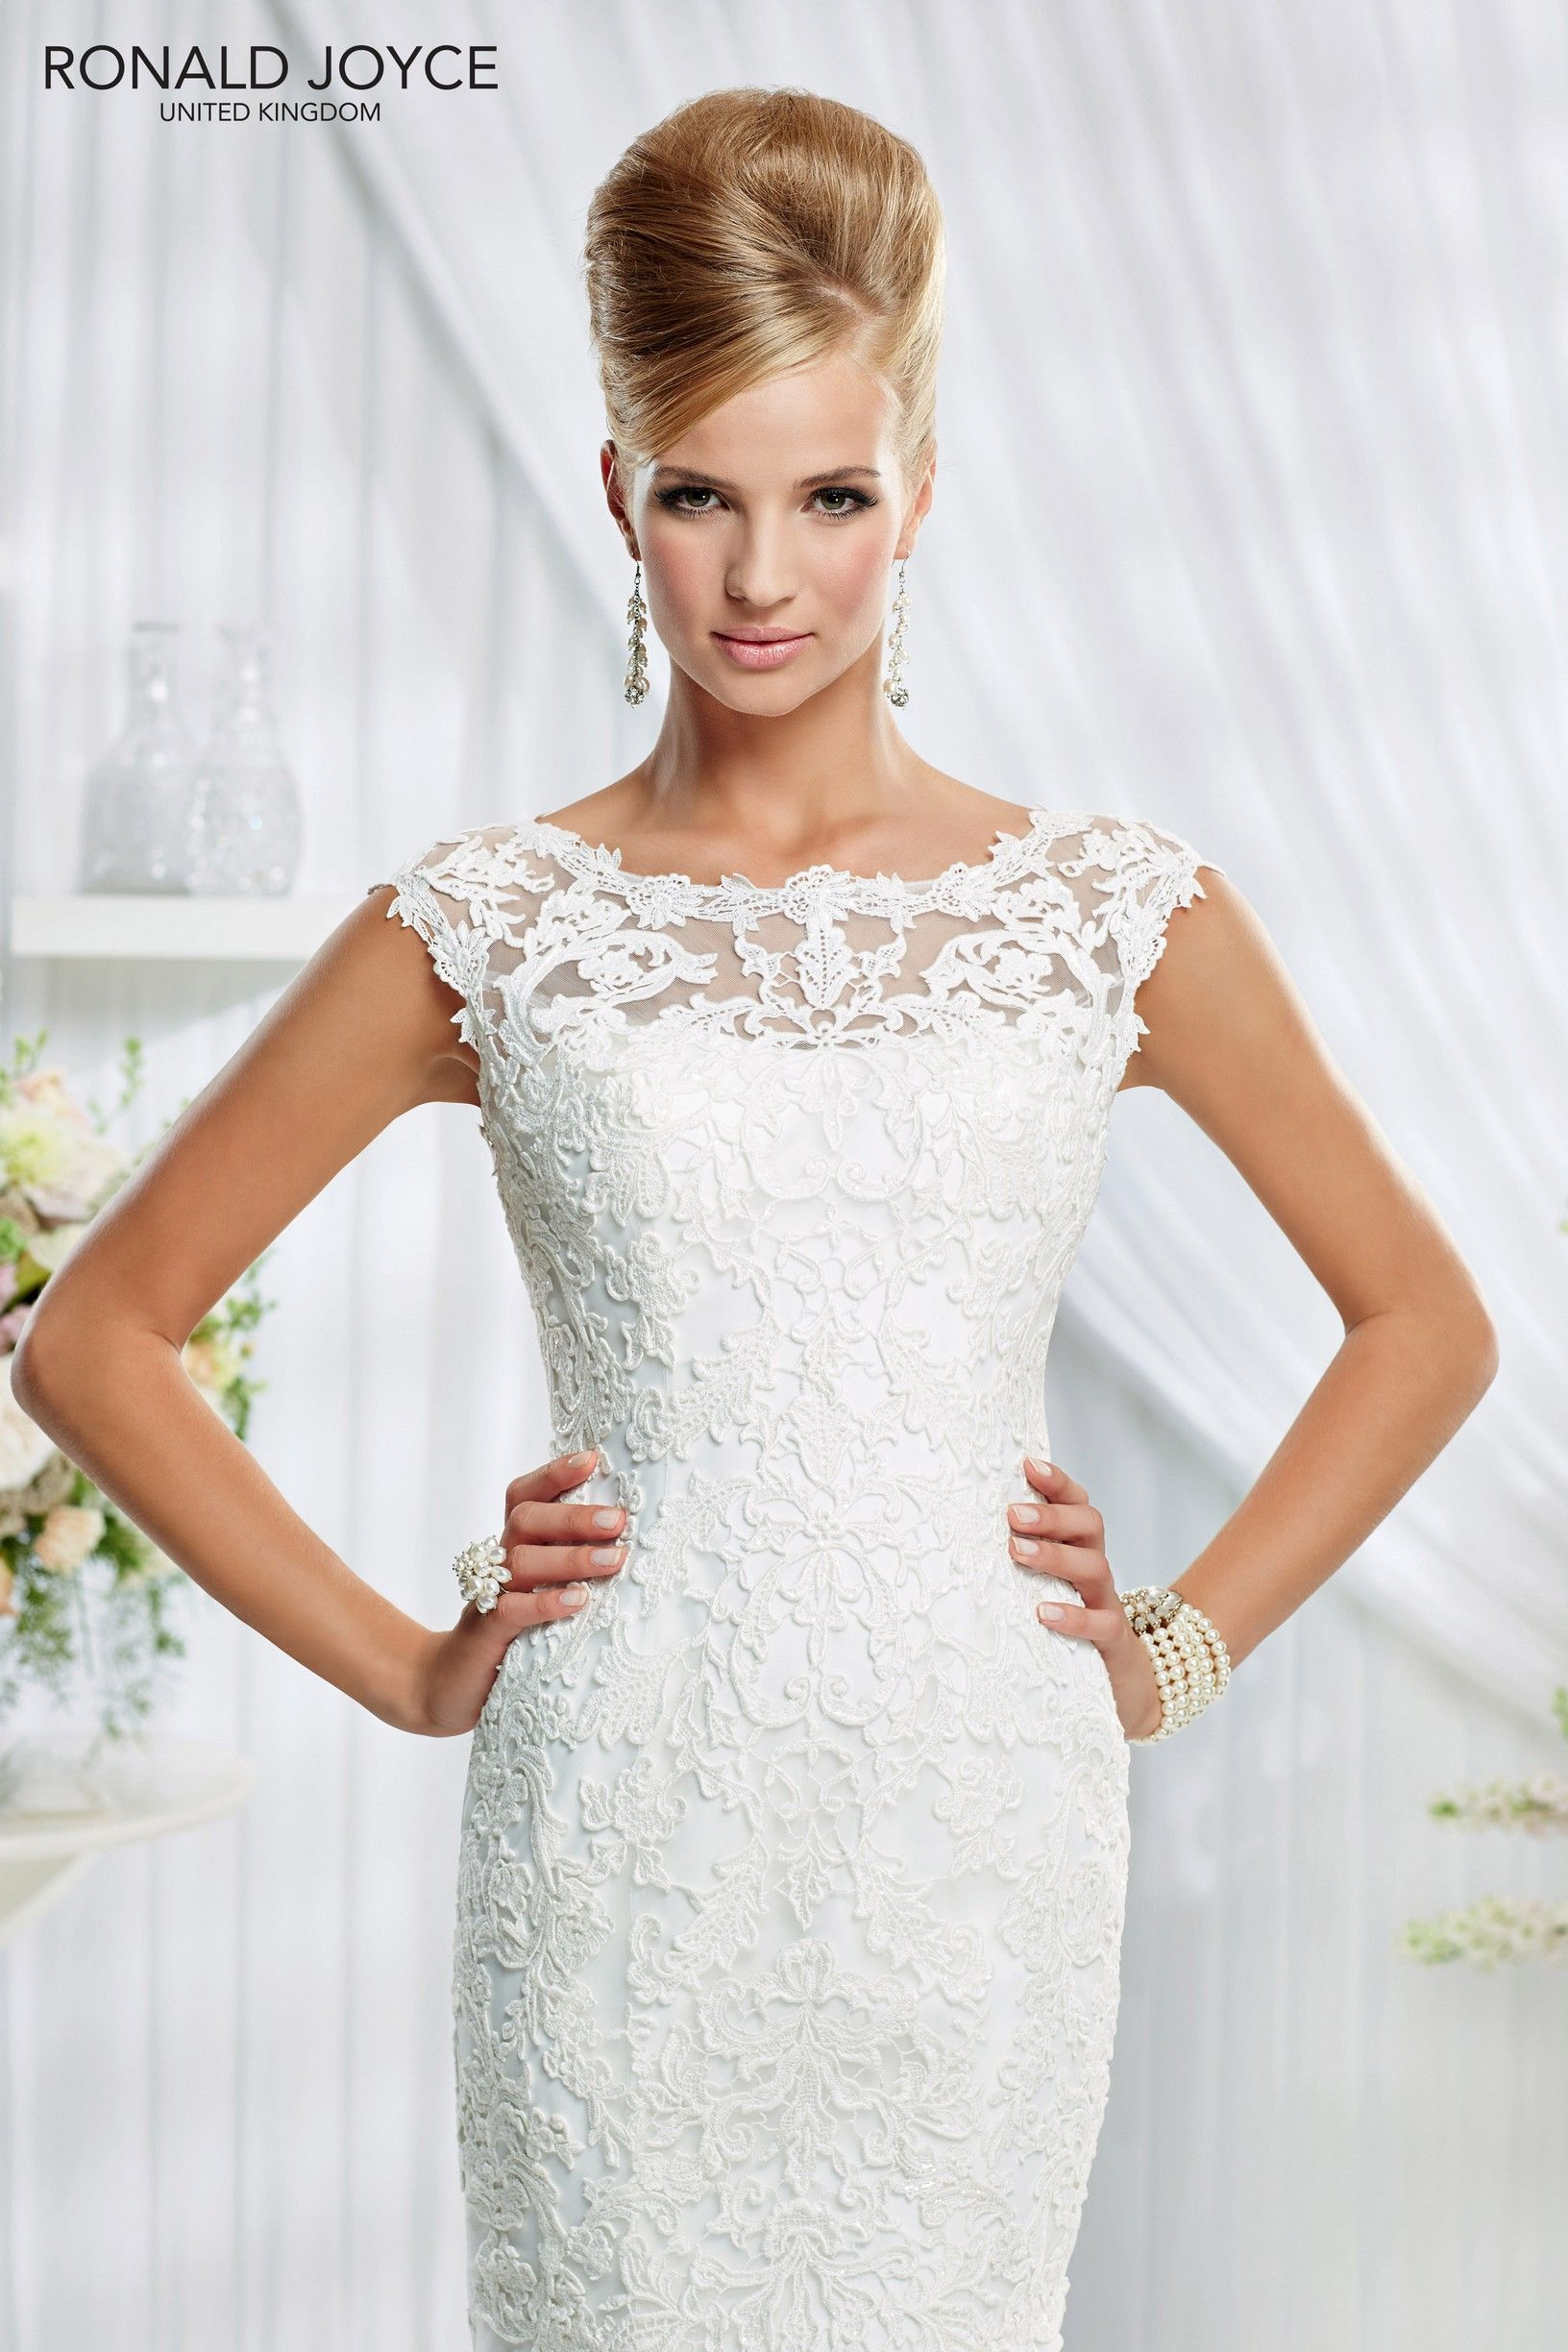 Dress style fyznv lace over organza fishtail dress with high neck